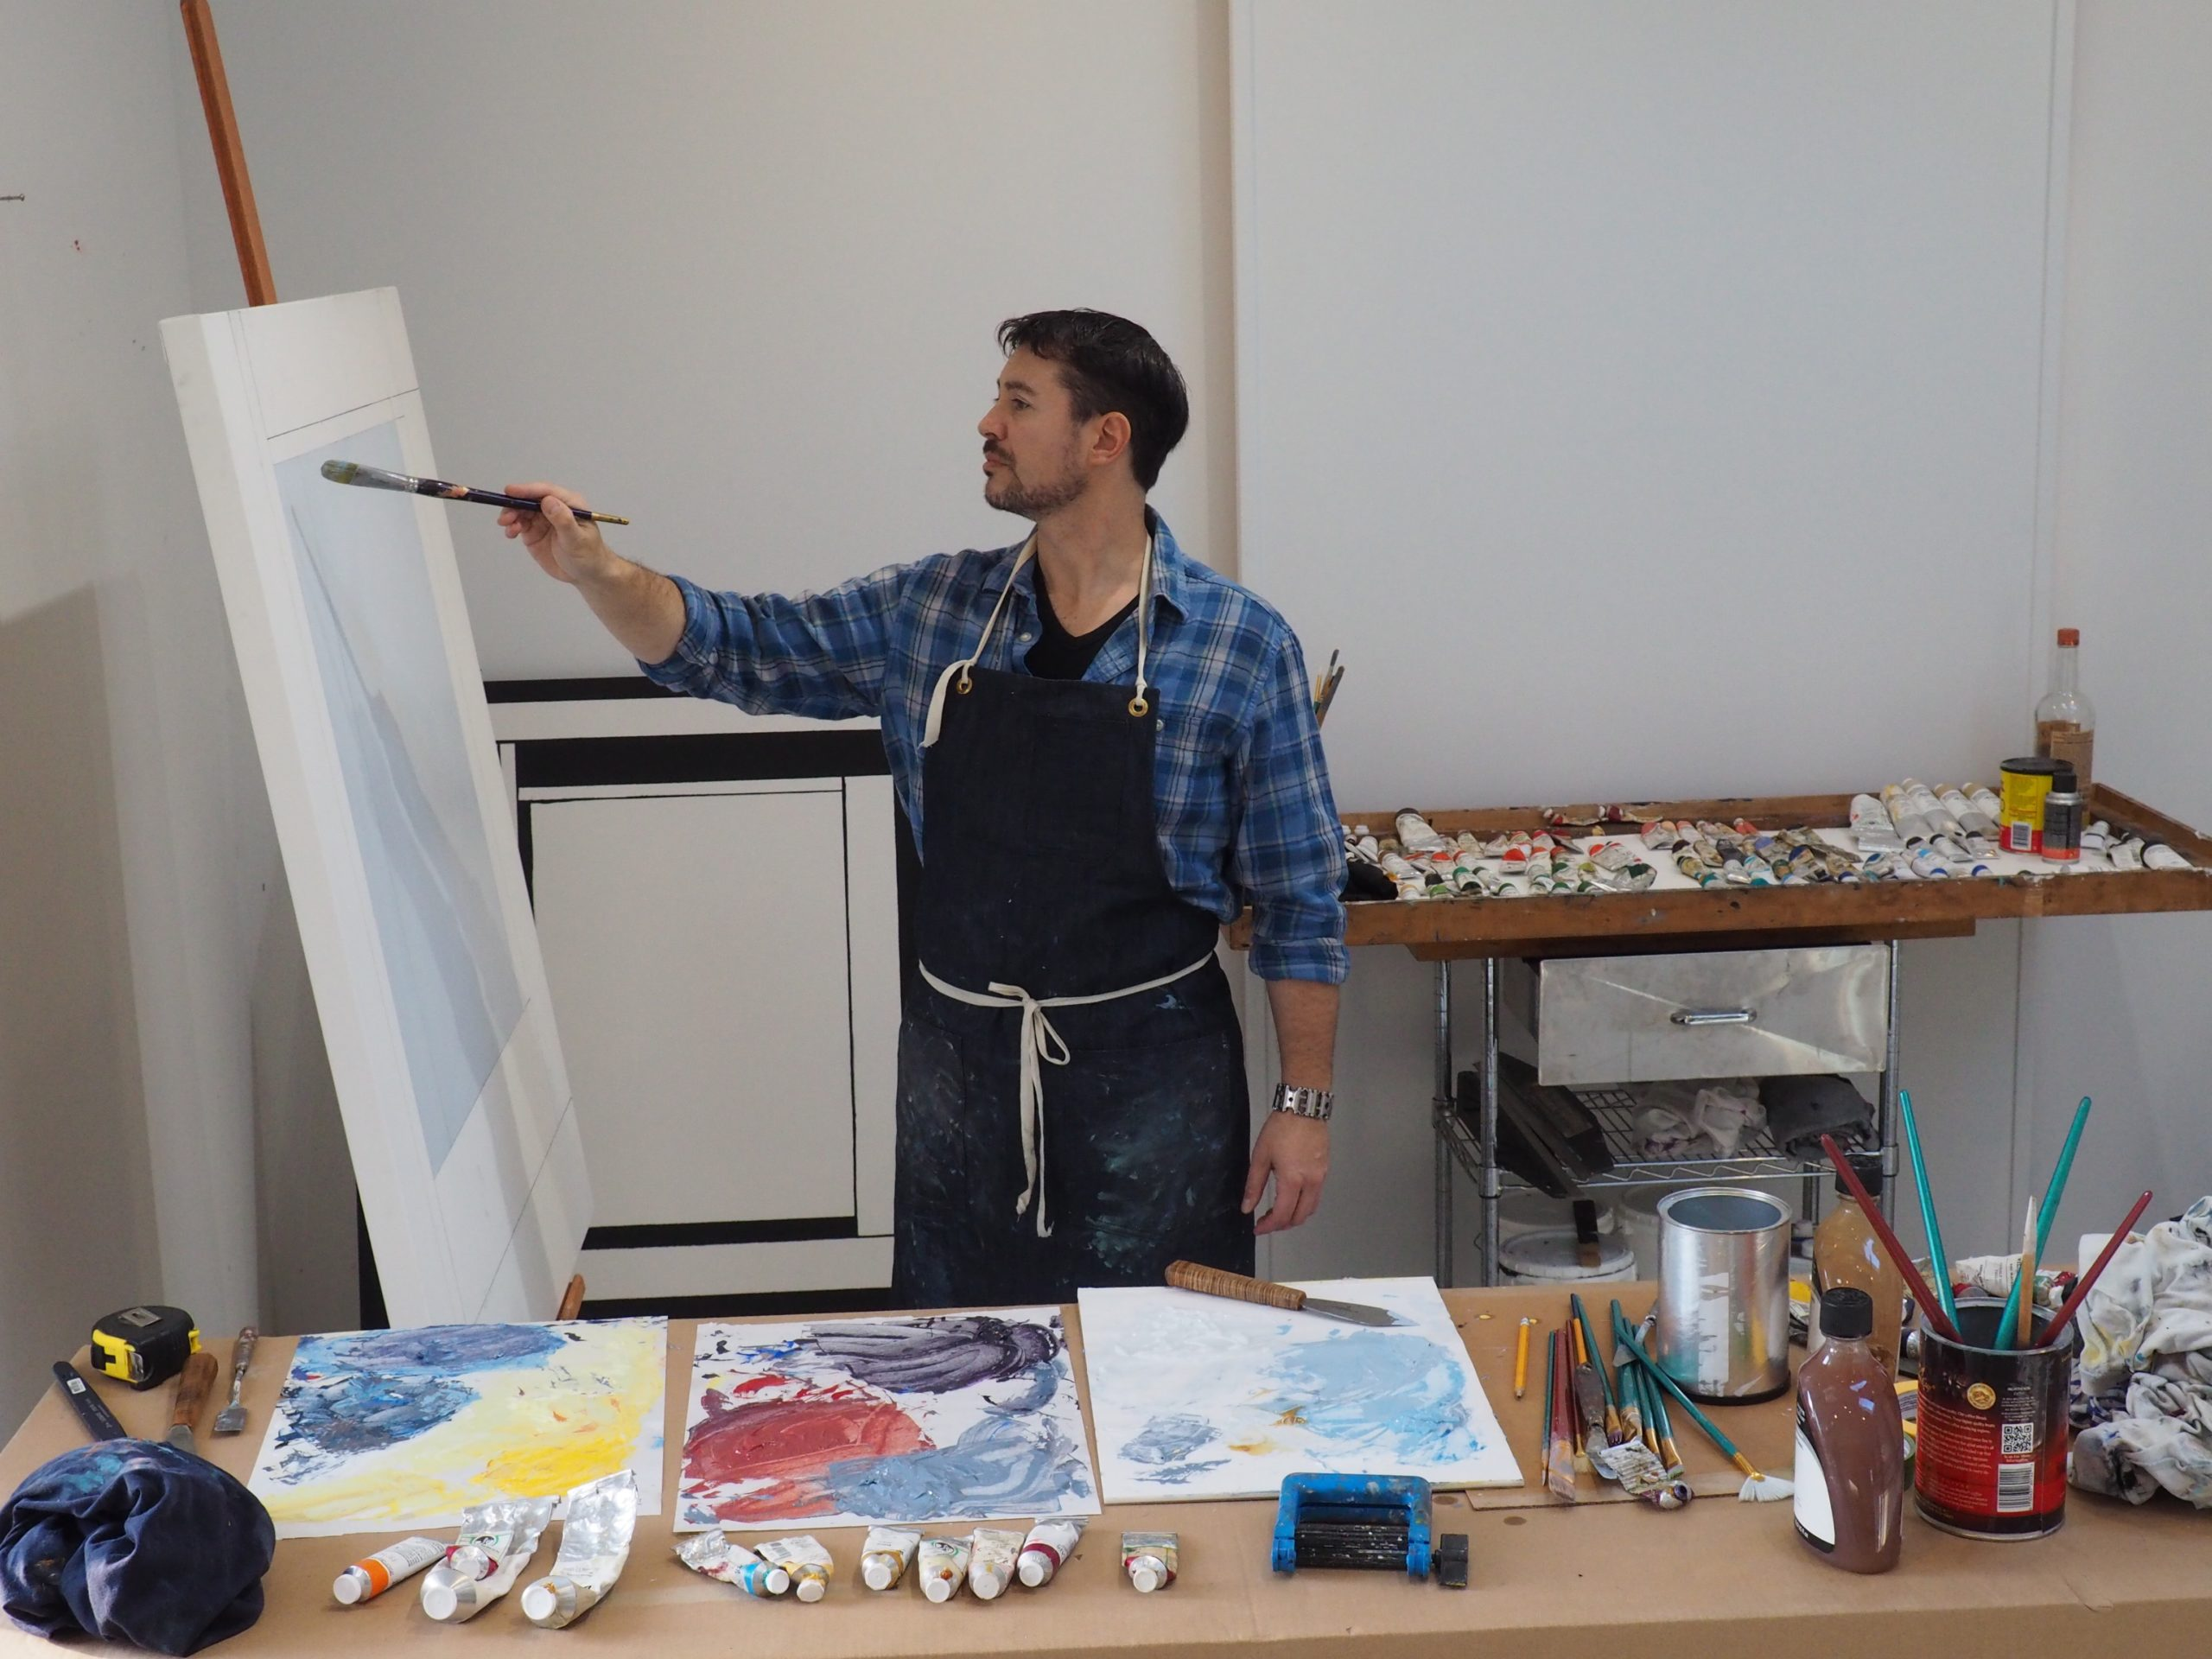 Artist Chris Kelly works on a painting in his studio.